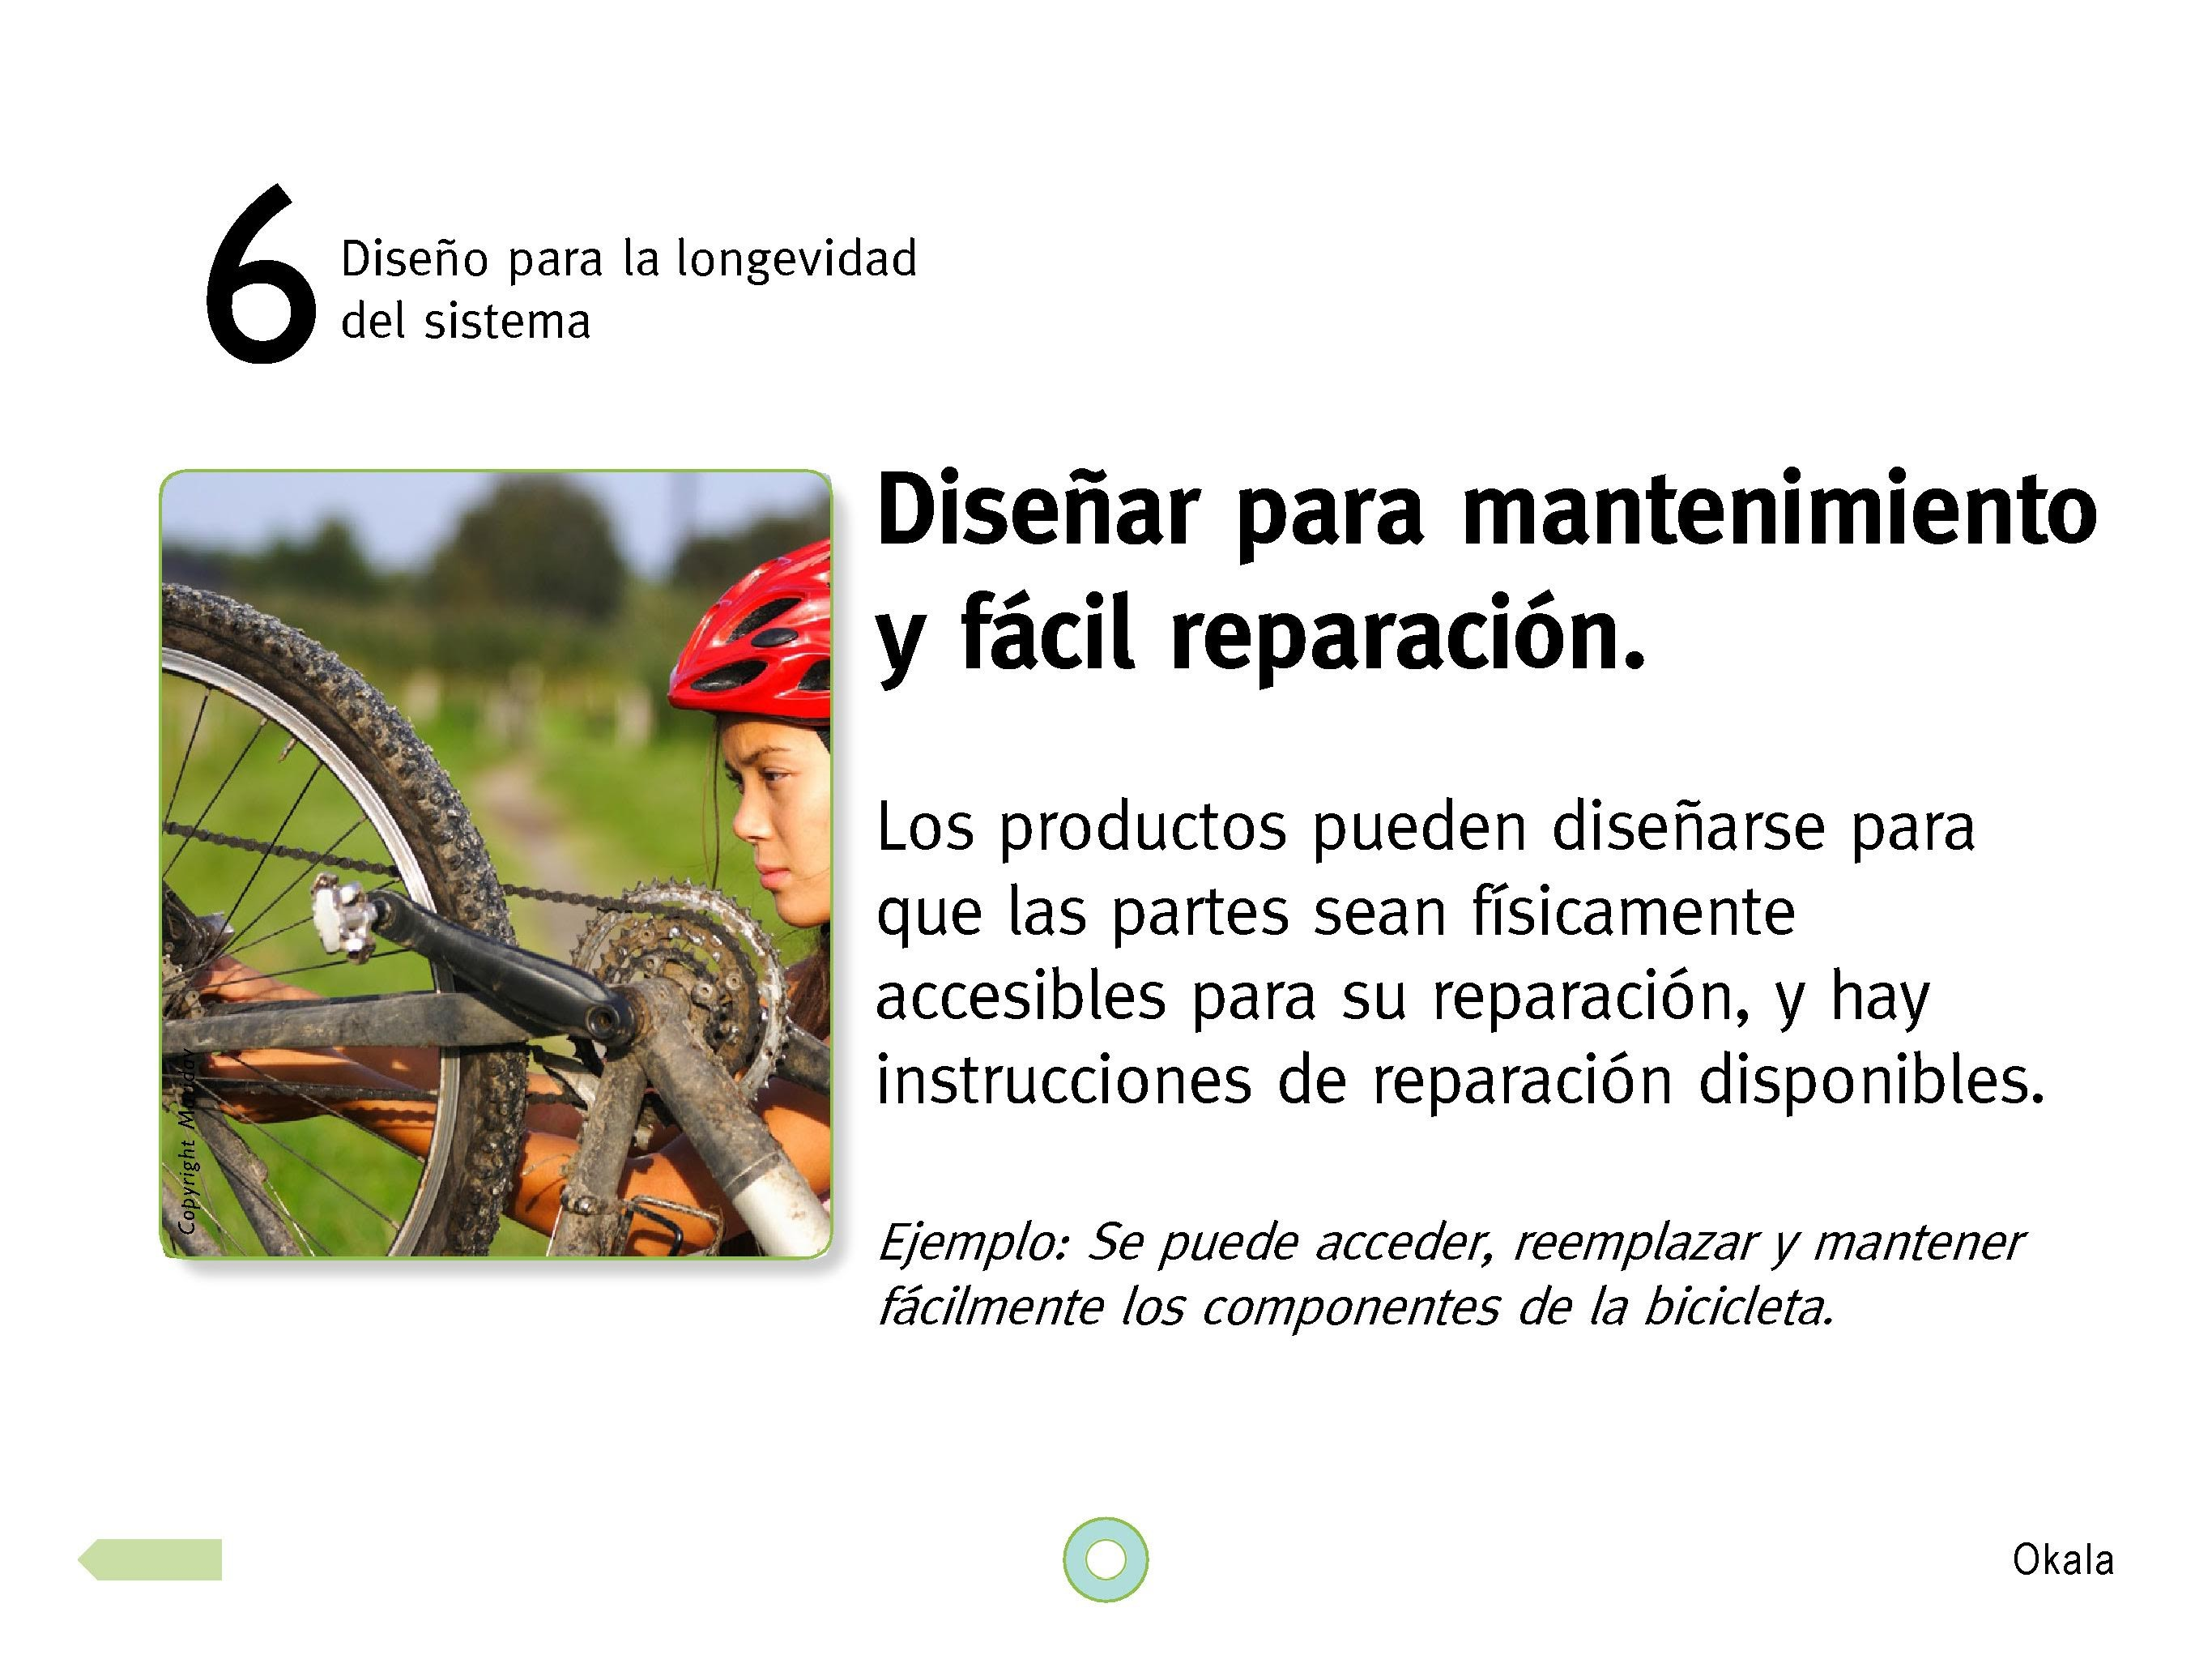 okala-ecodesign-strategy-guide-2012-spanish.new_page_34-1